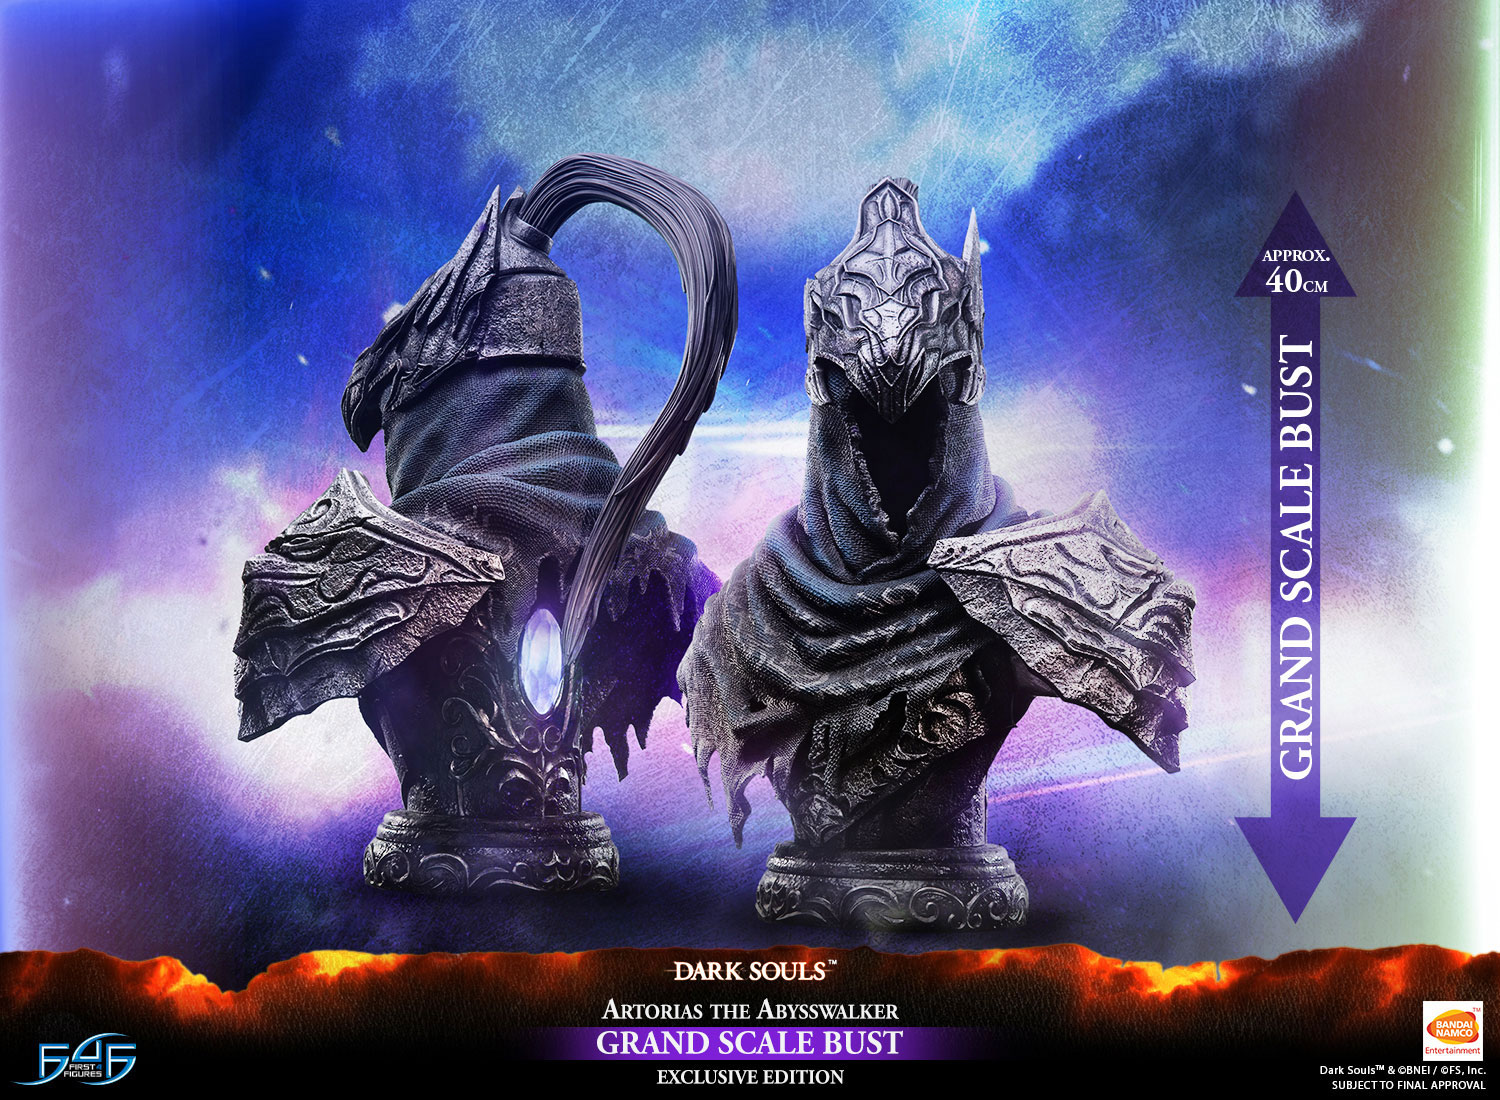 Artorias the Abysswalker Grand-Scale Bust (Exclusive Edition)